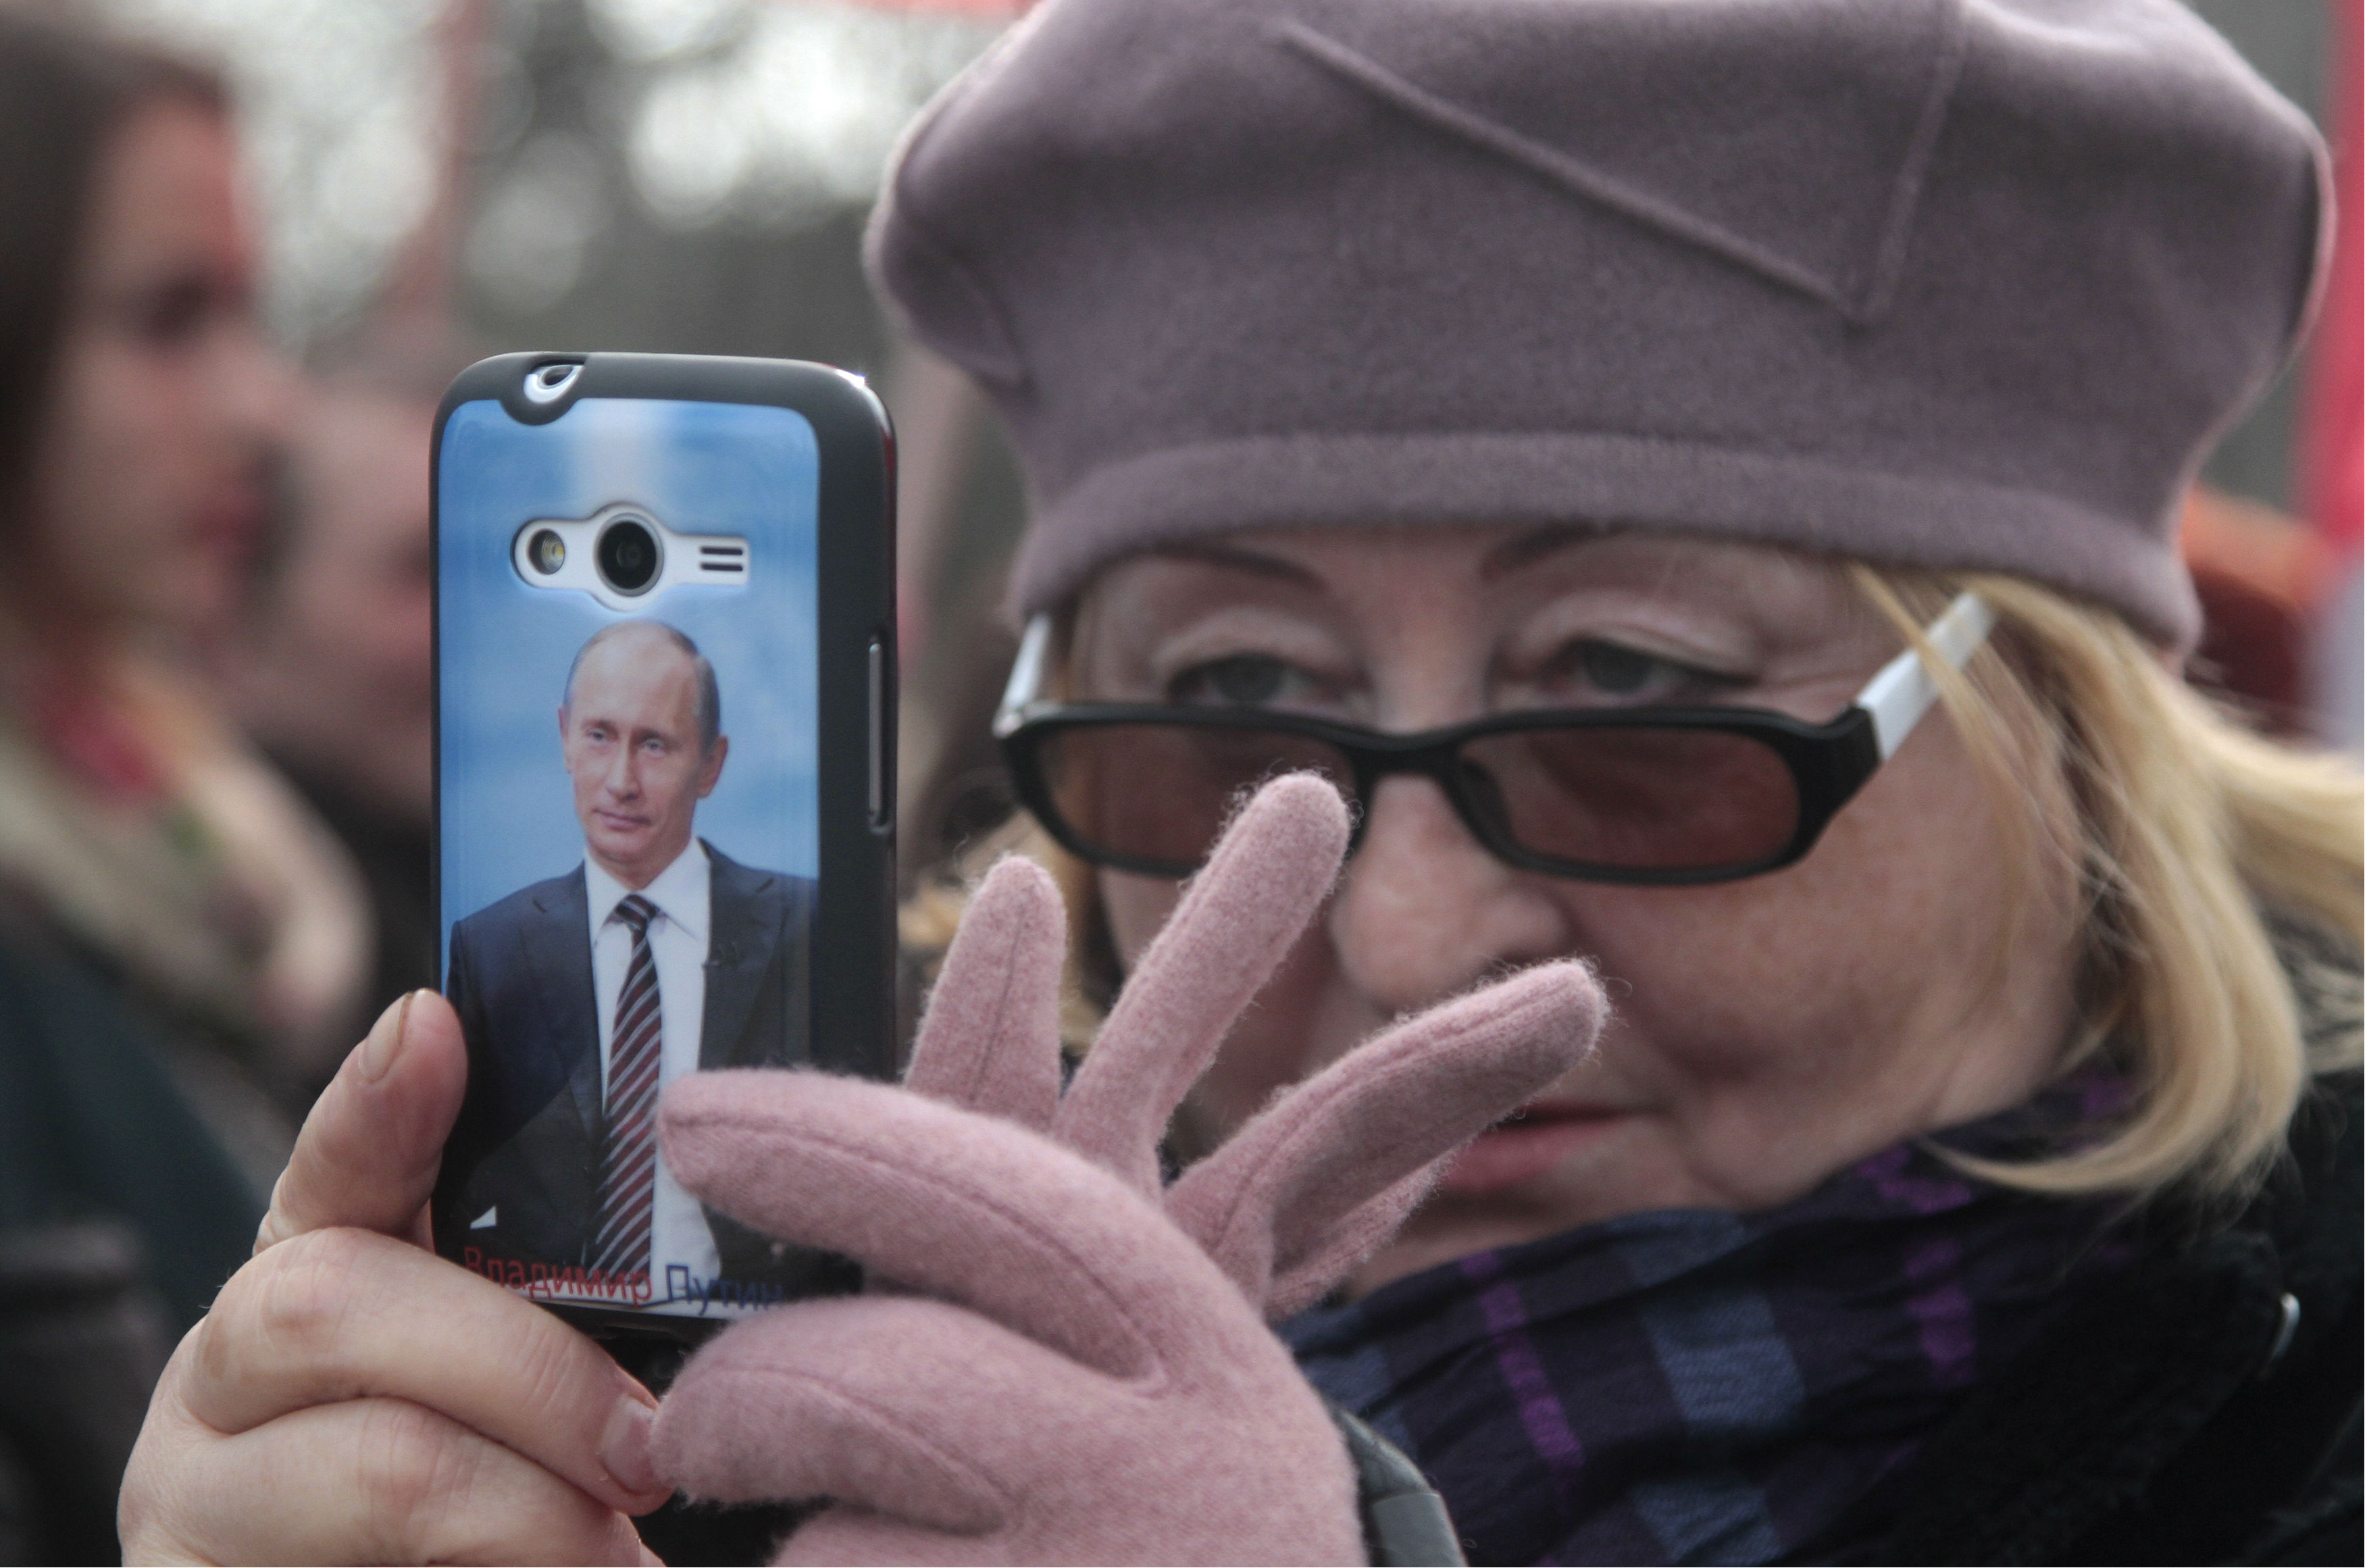 What Do Russians Think of Ukrainians, and Vice Versa?